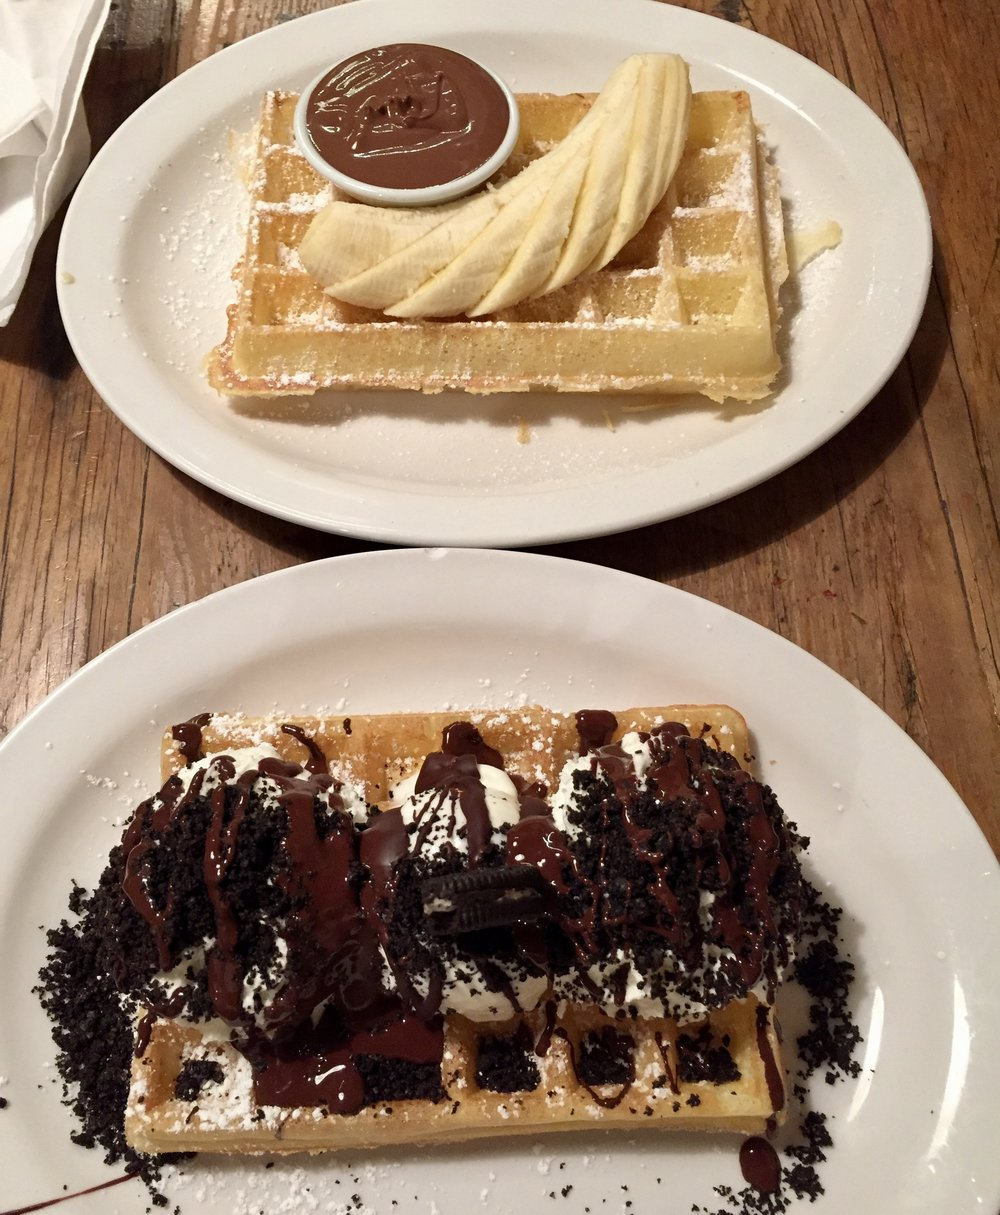 Dessert Waffle; Vancouver, Canada